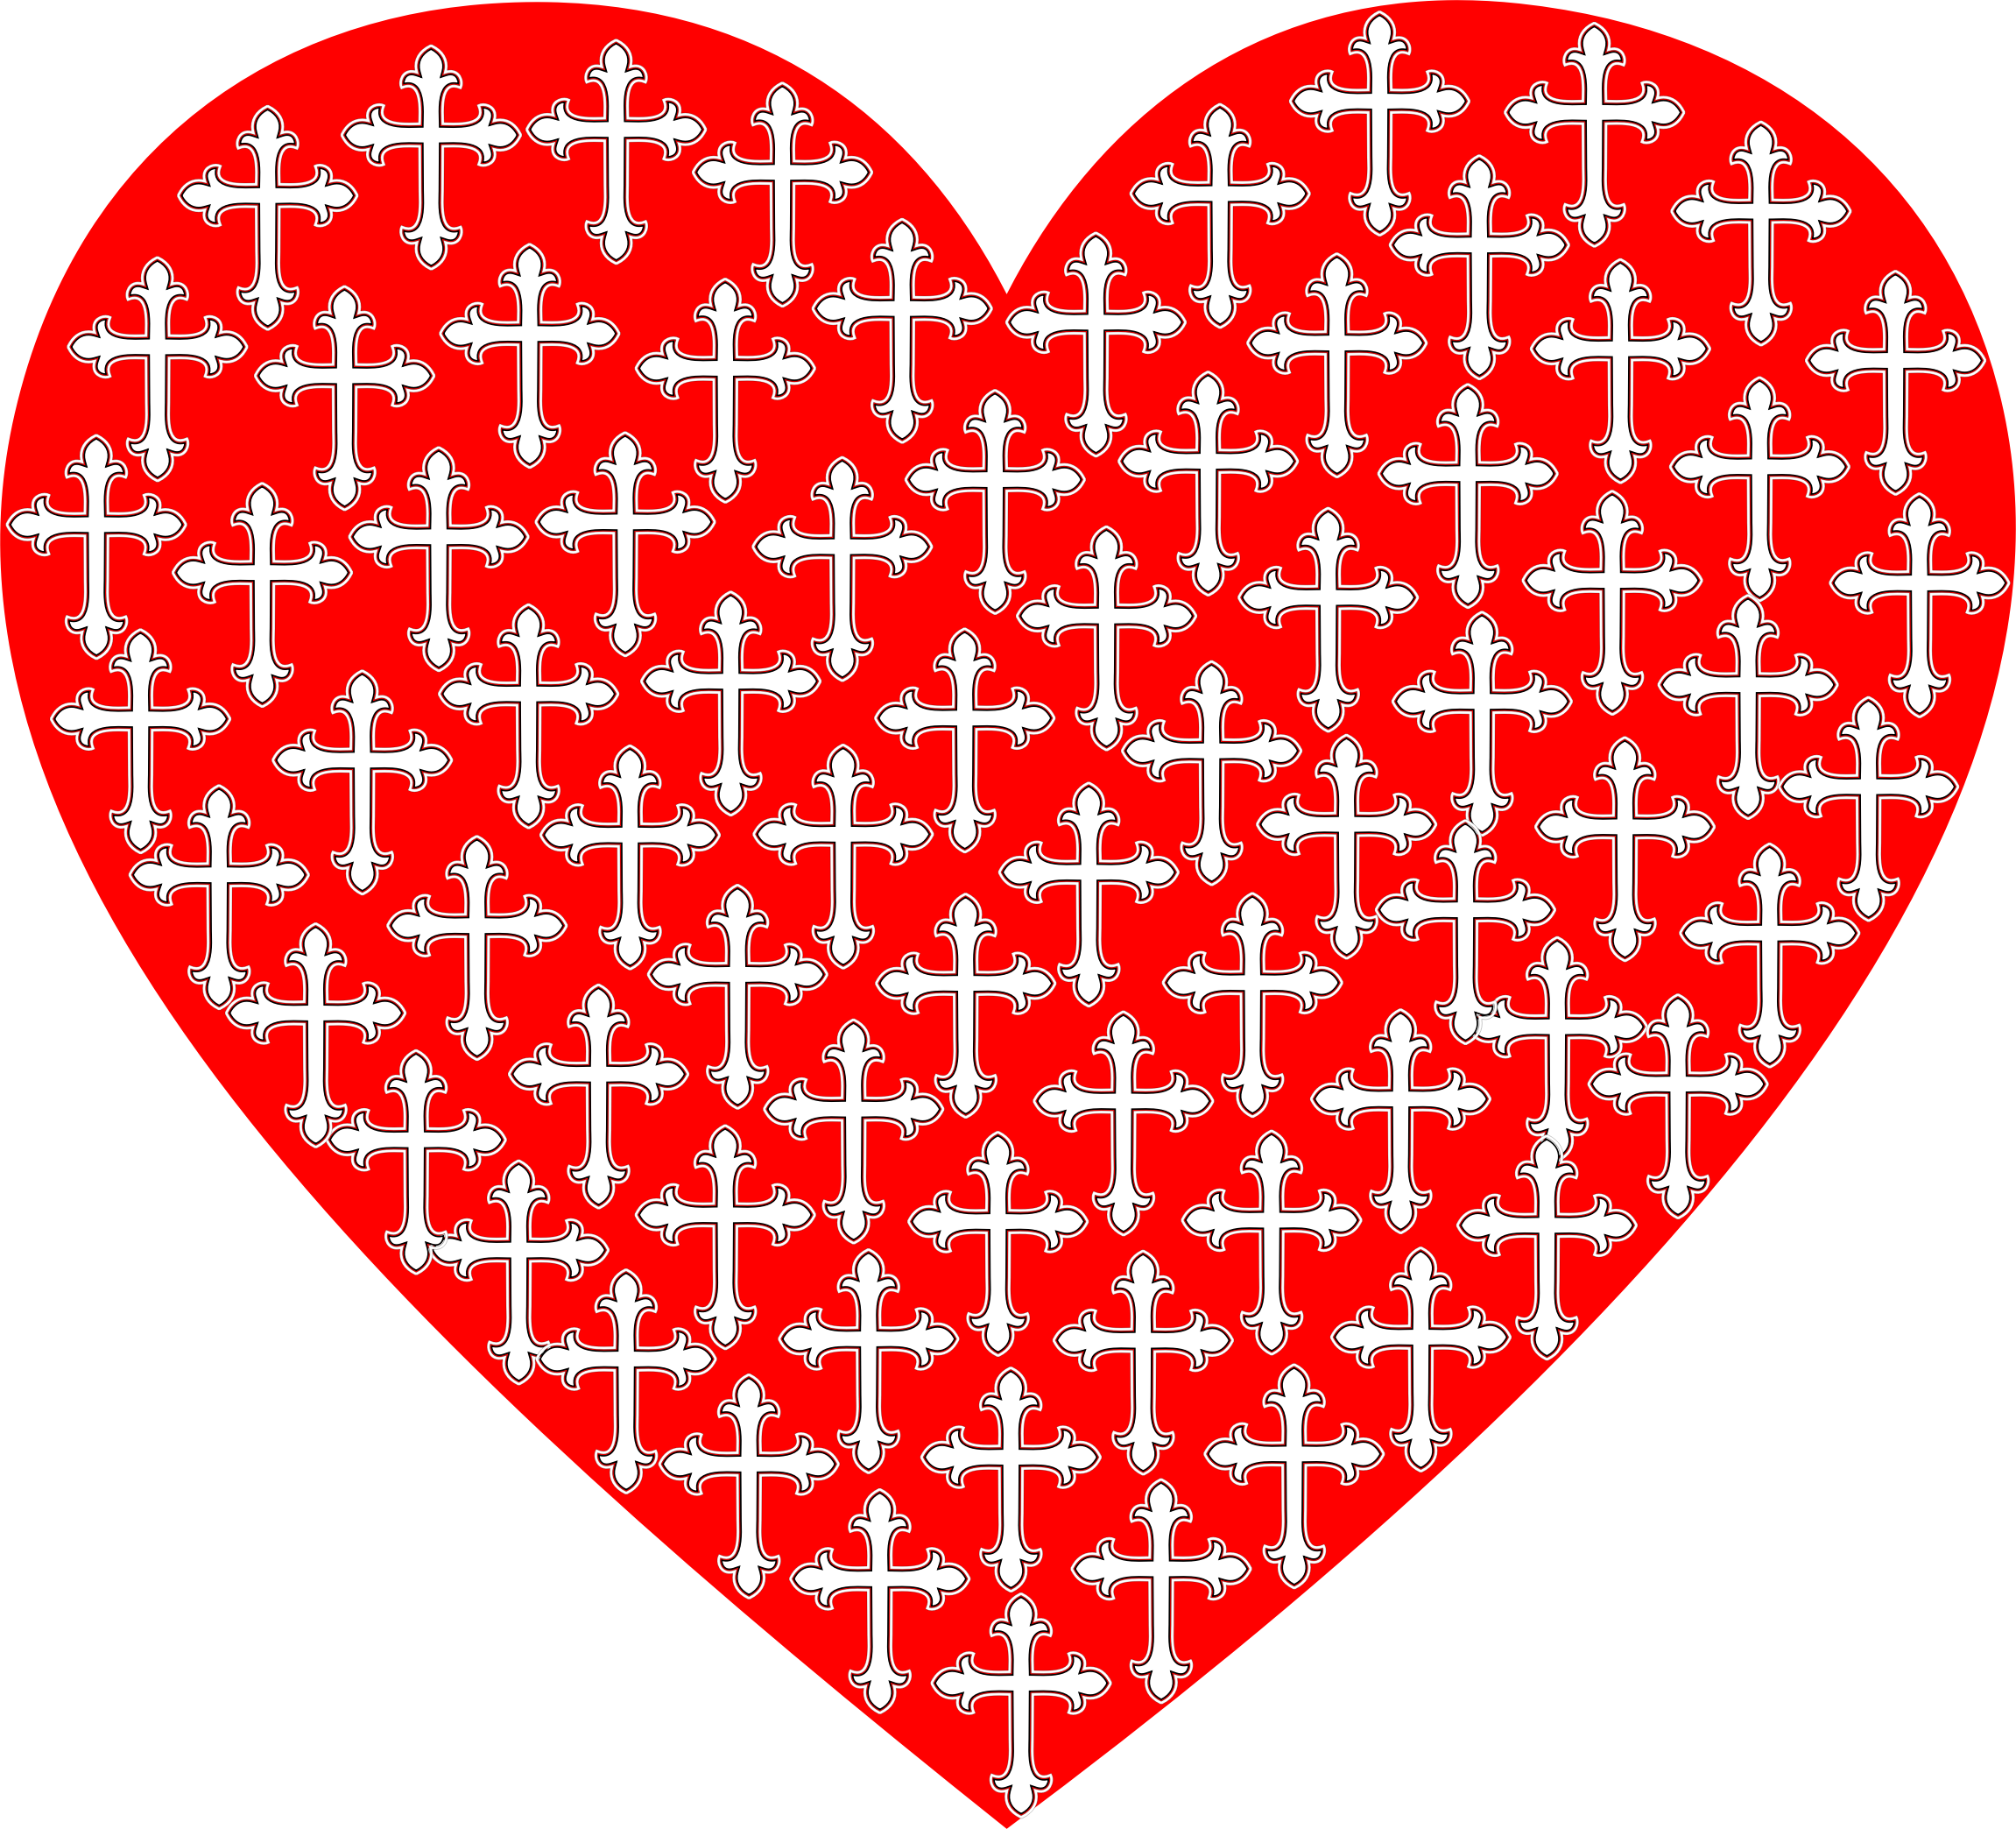 Love Heart Crosses by GDJ